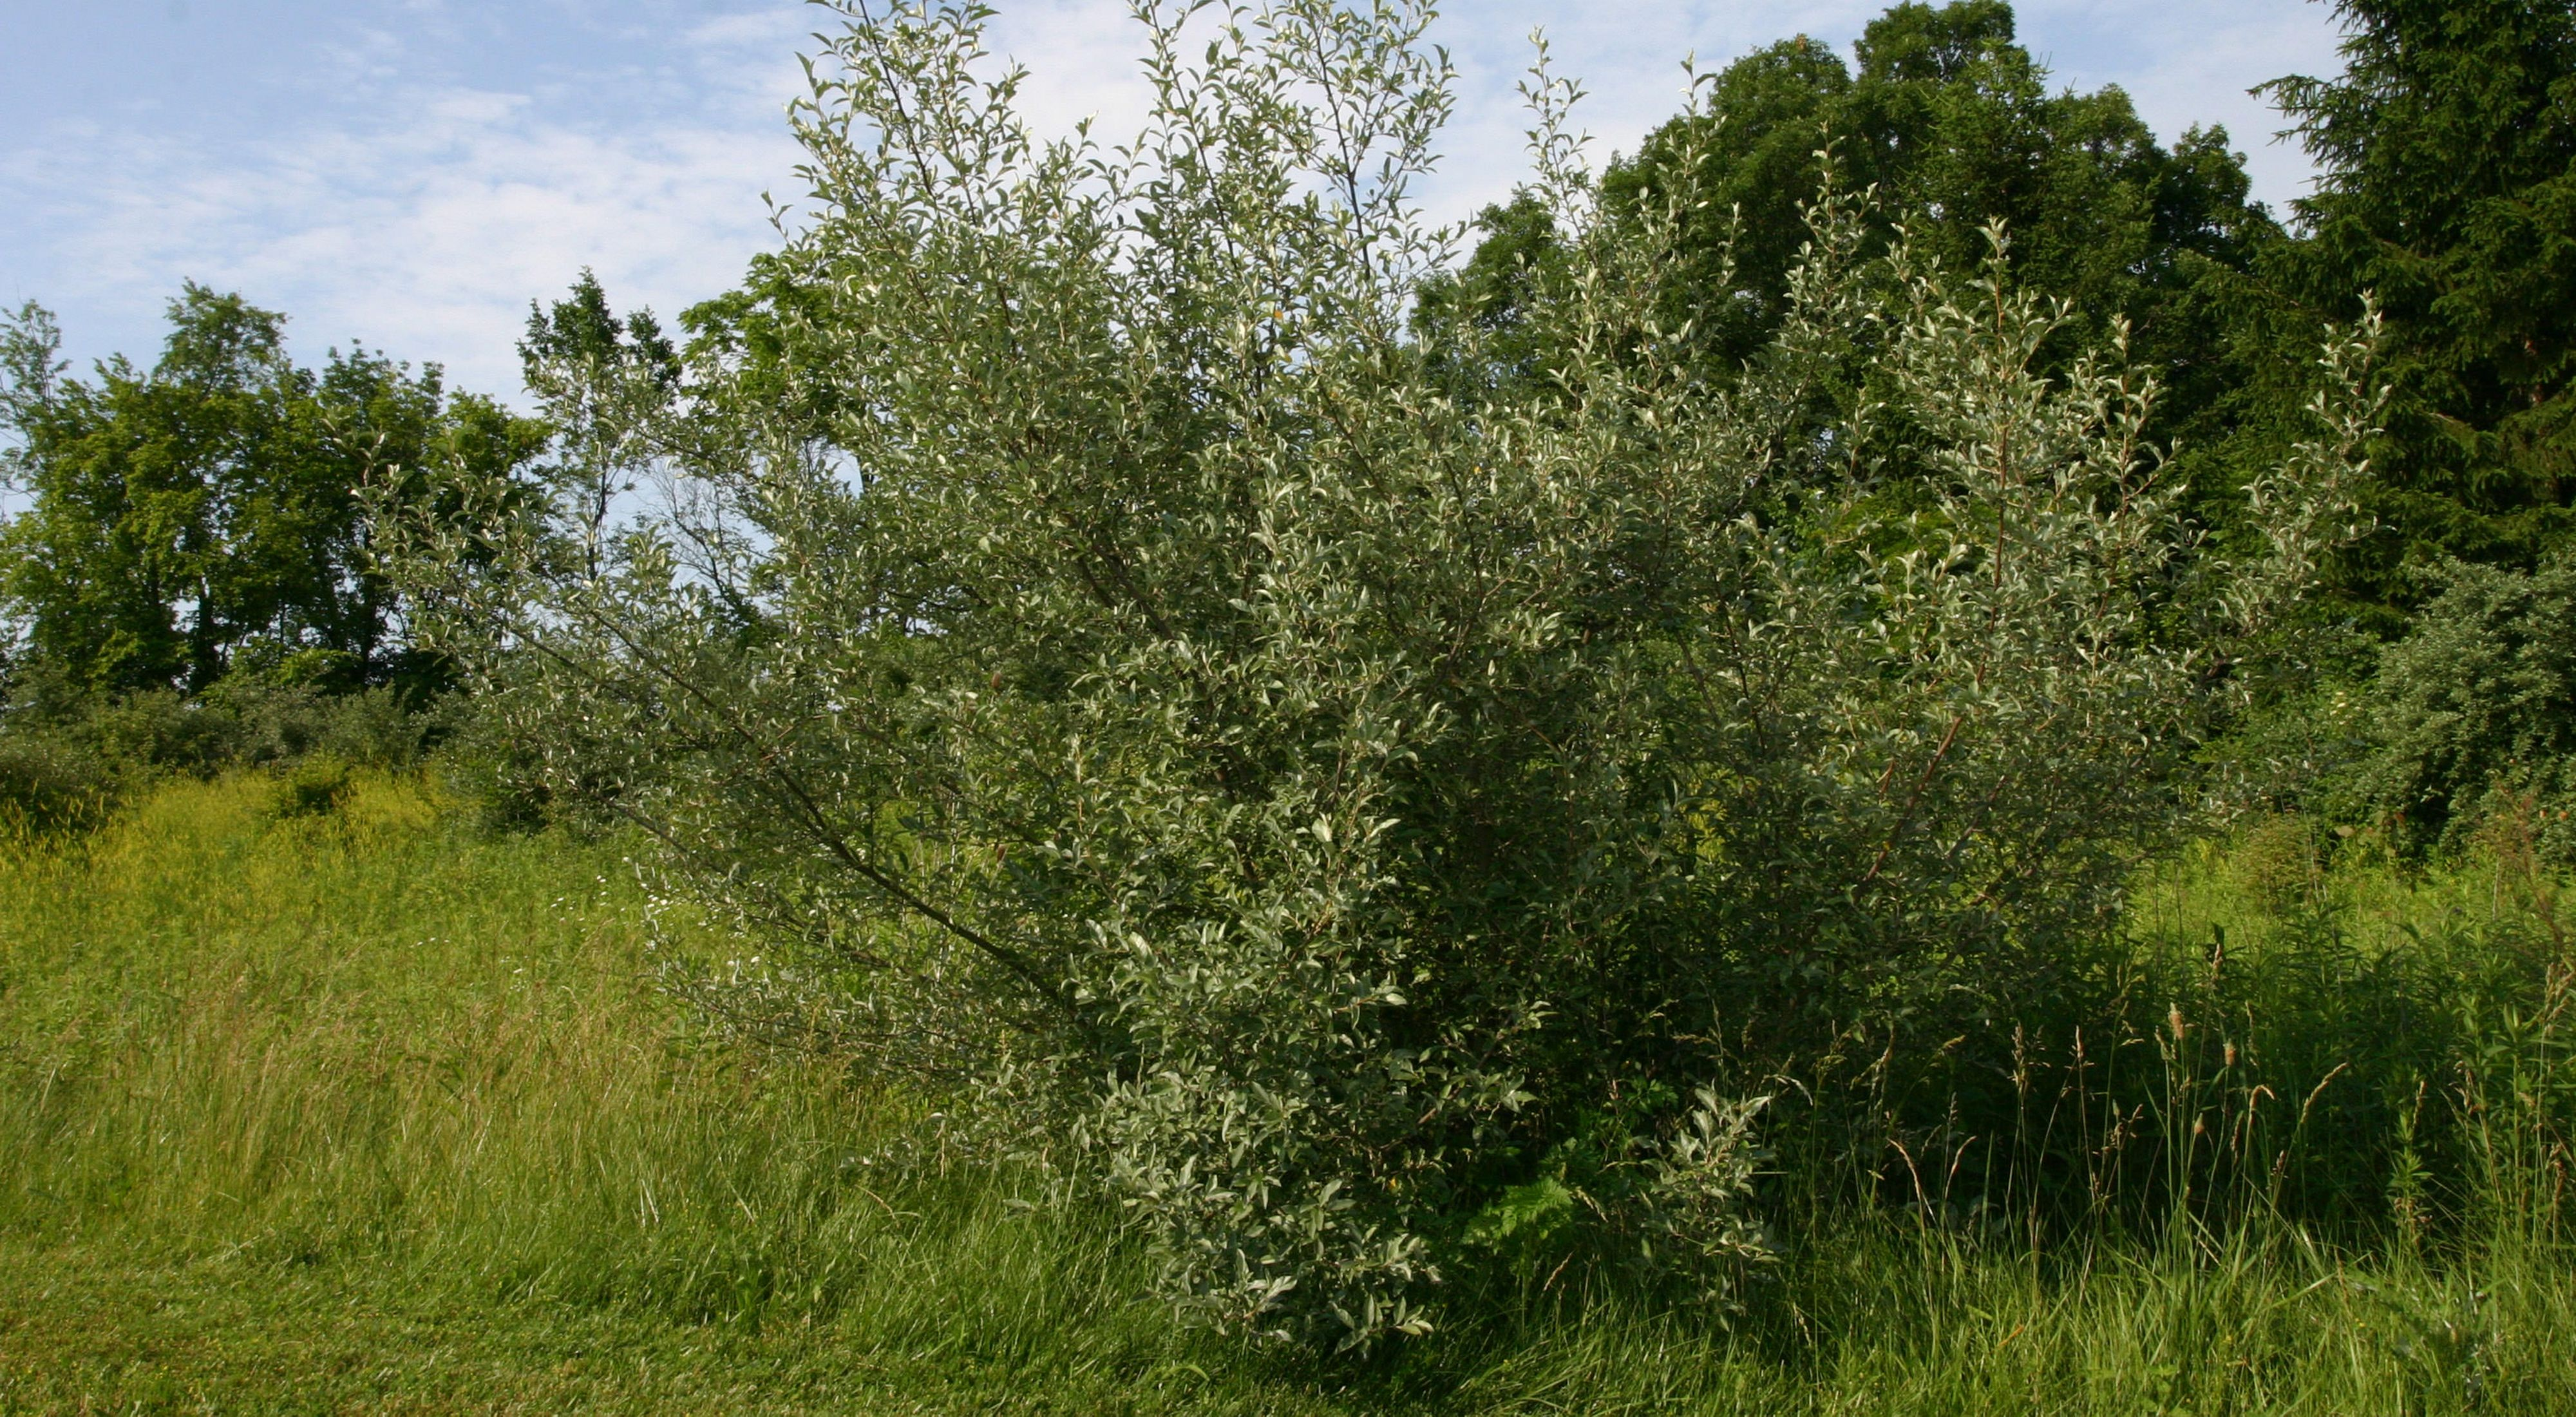 silvery green leaves of invasive autumn olive in grassy clearing